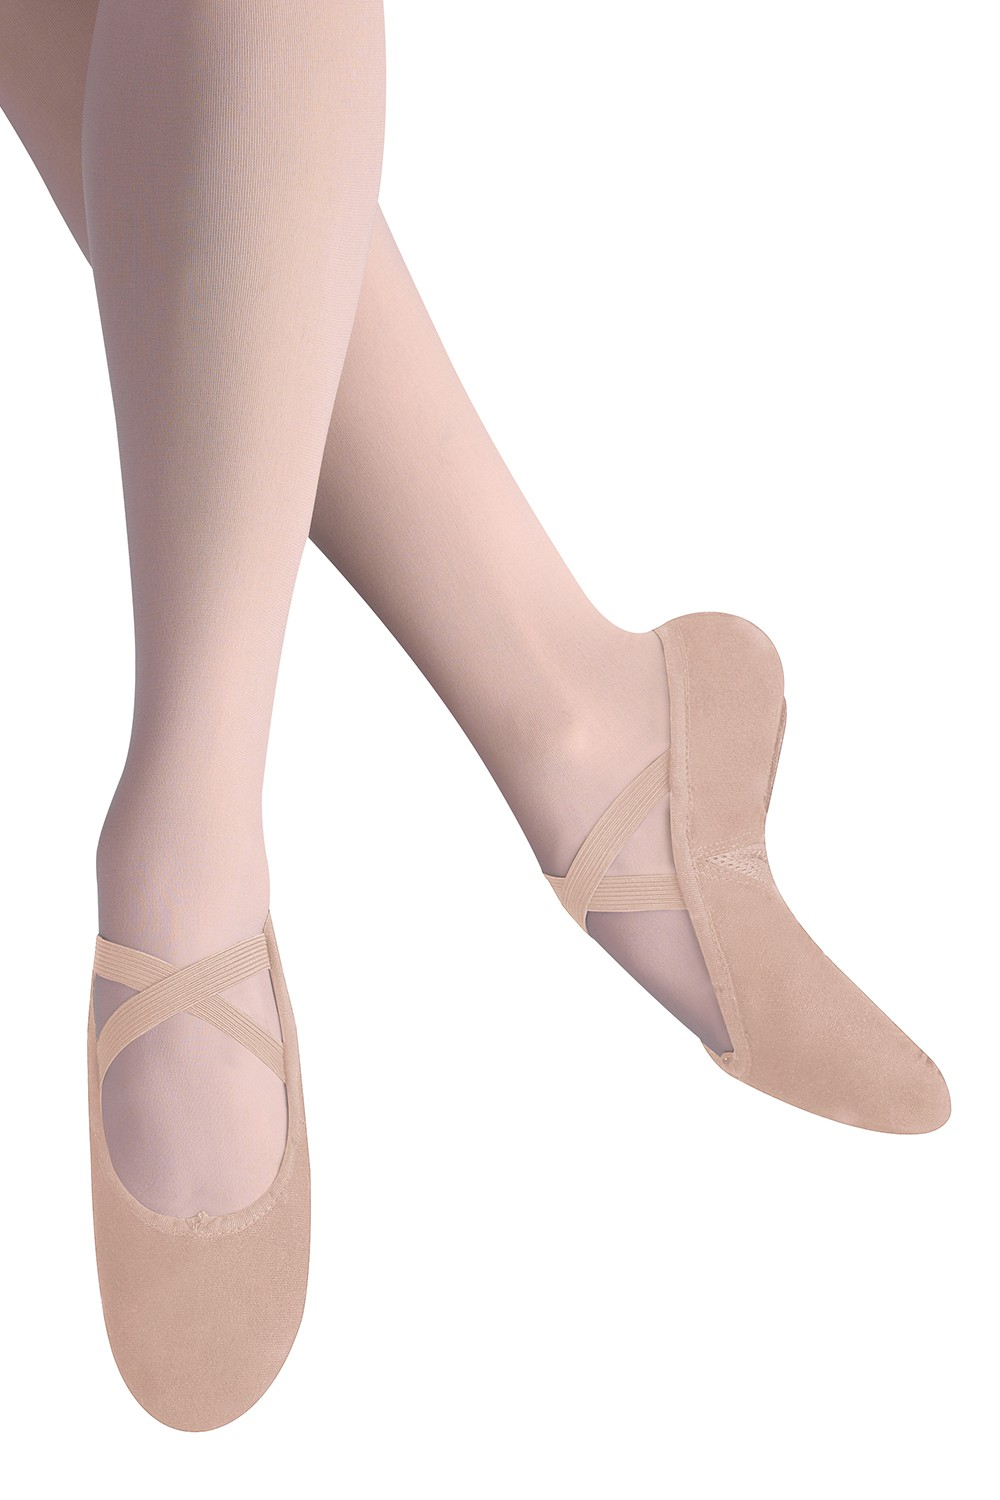 Arabesque Canvas Women's Ballet Shoes